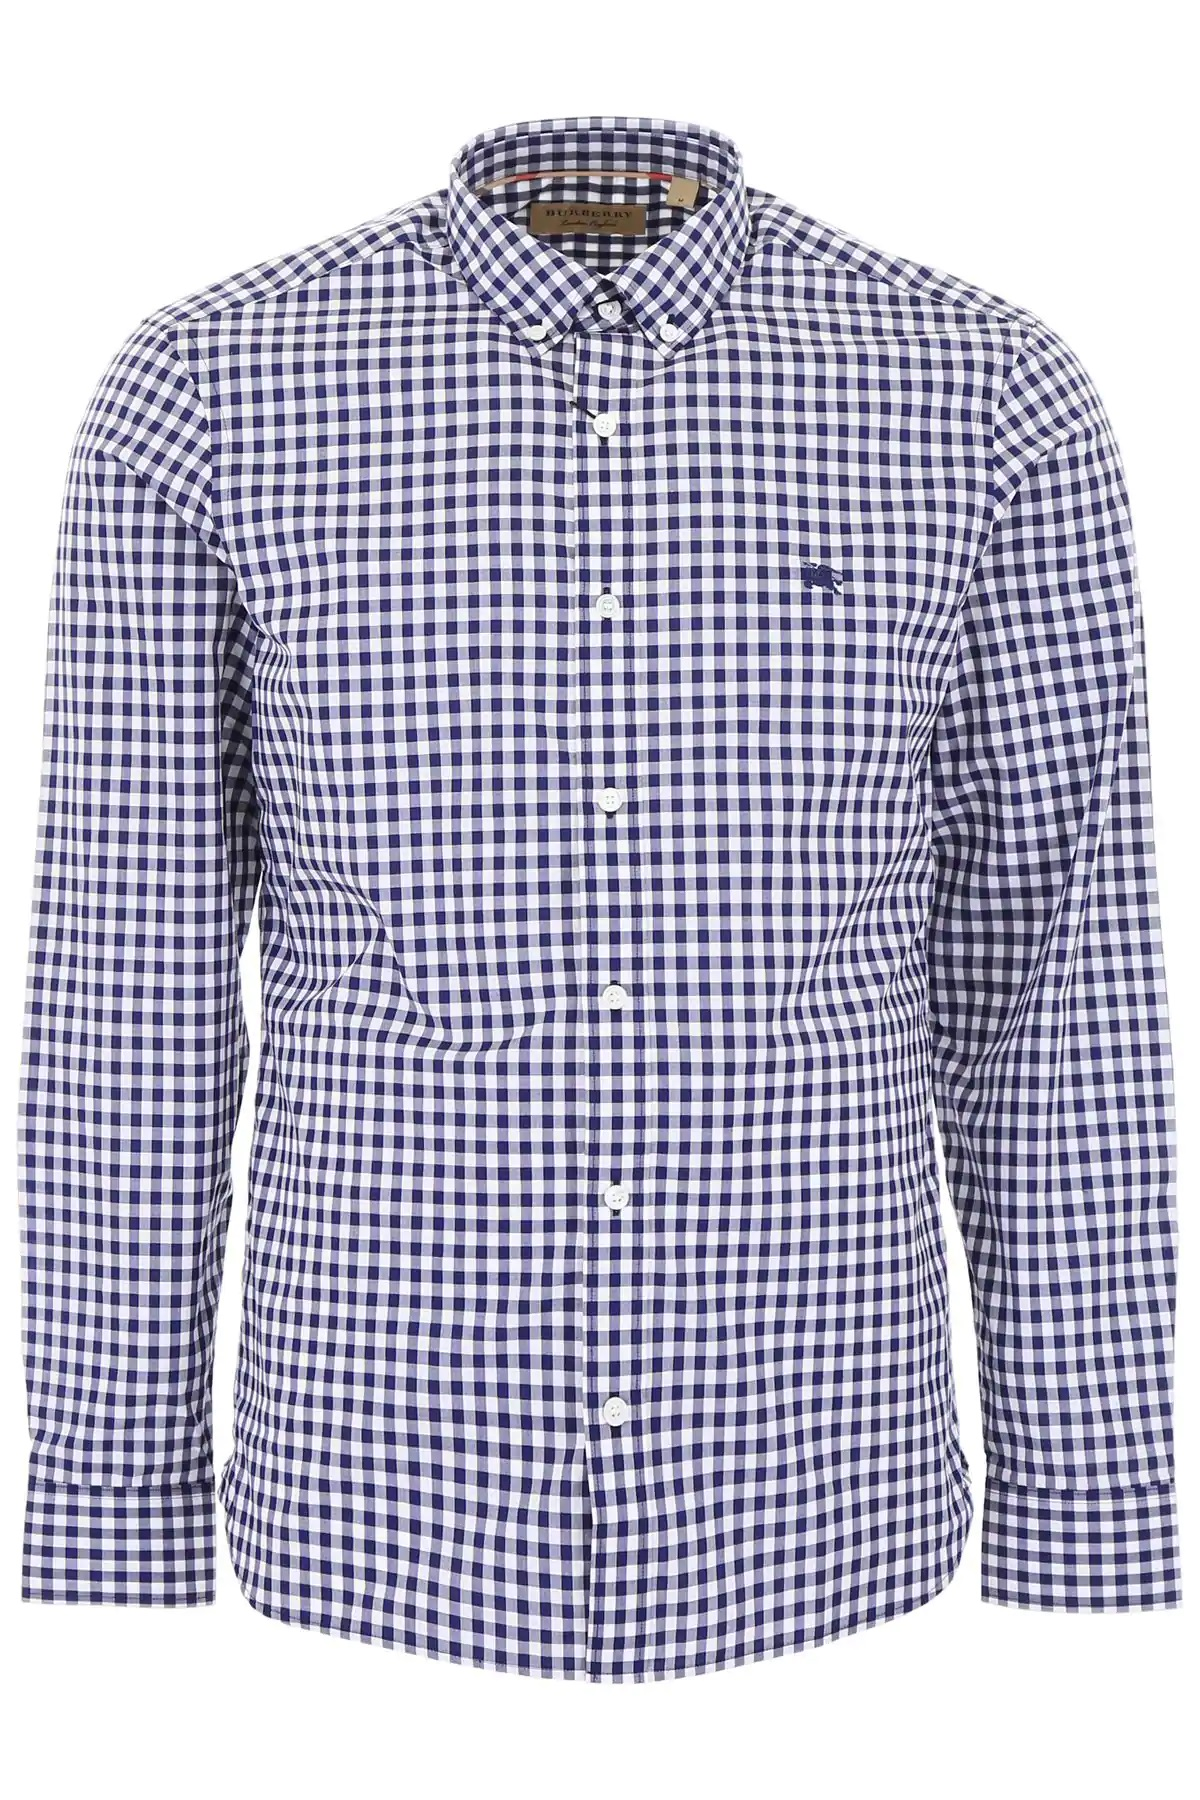 Burberry Stopford Gingham Regular Fit Button-down Shirt In Navy In Blue